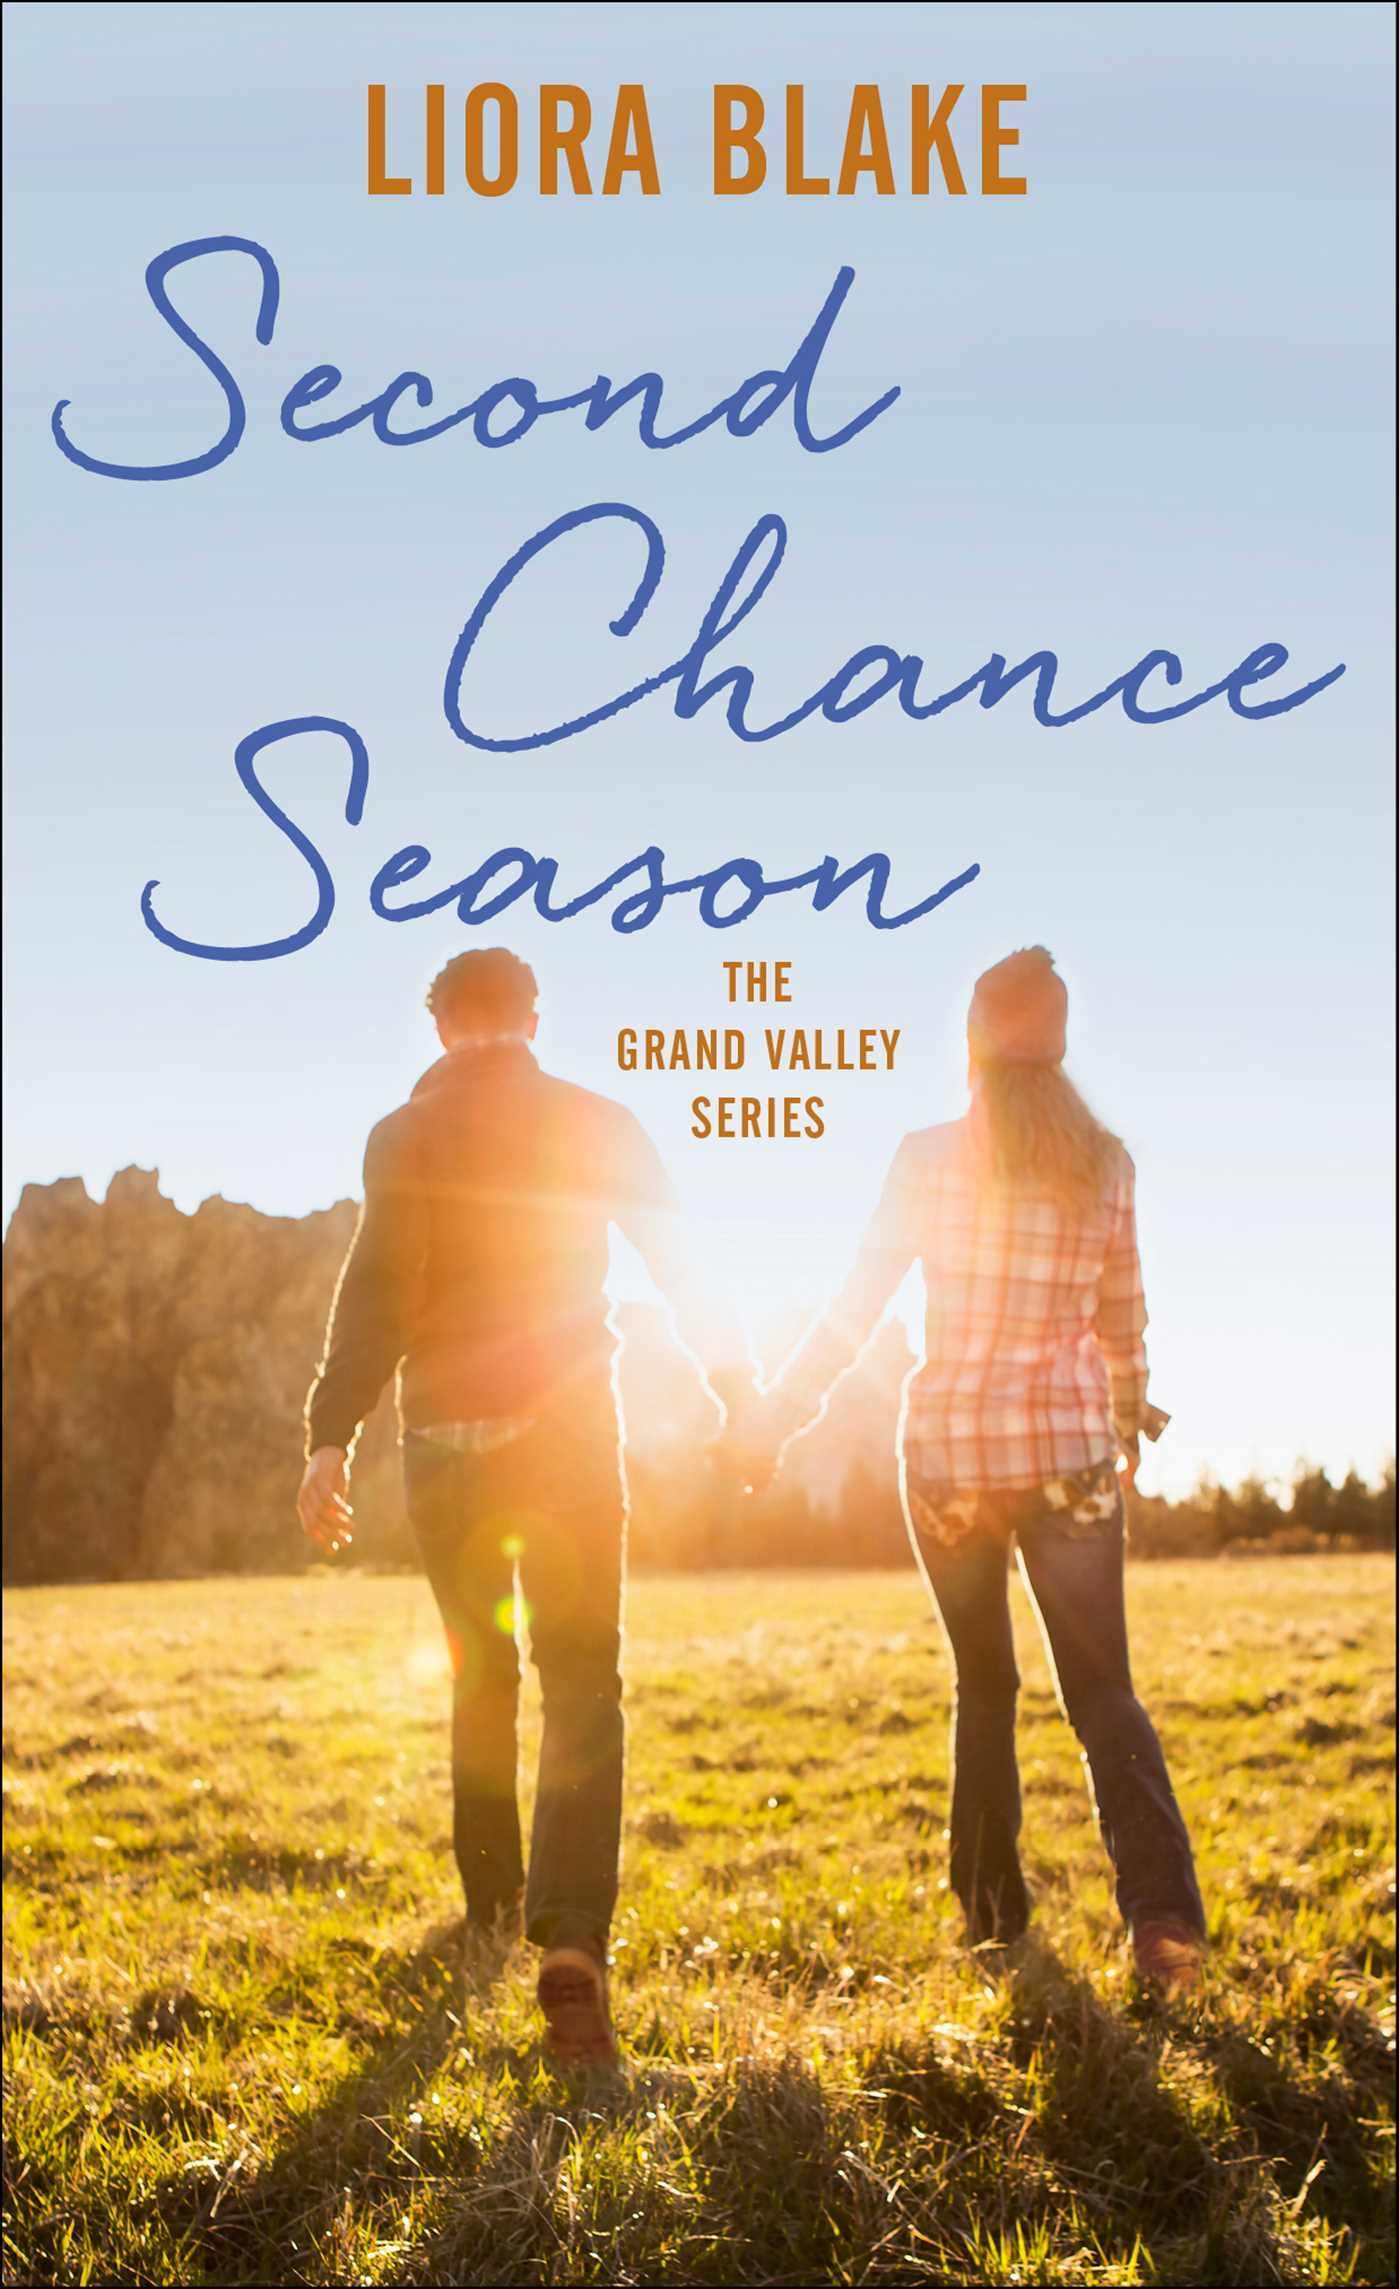 Second chance season 9781501155147 hr